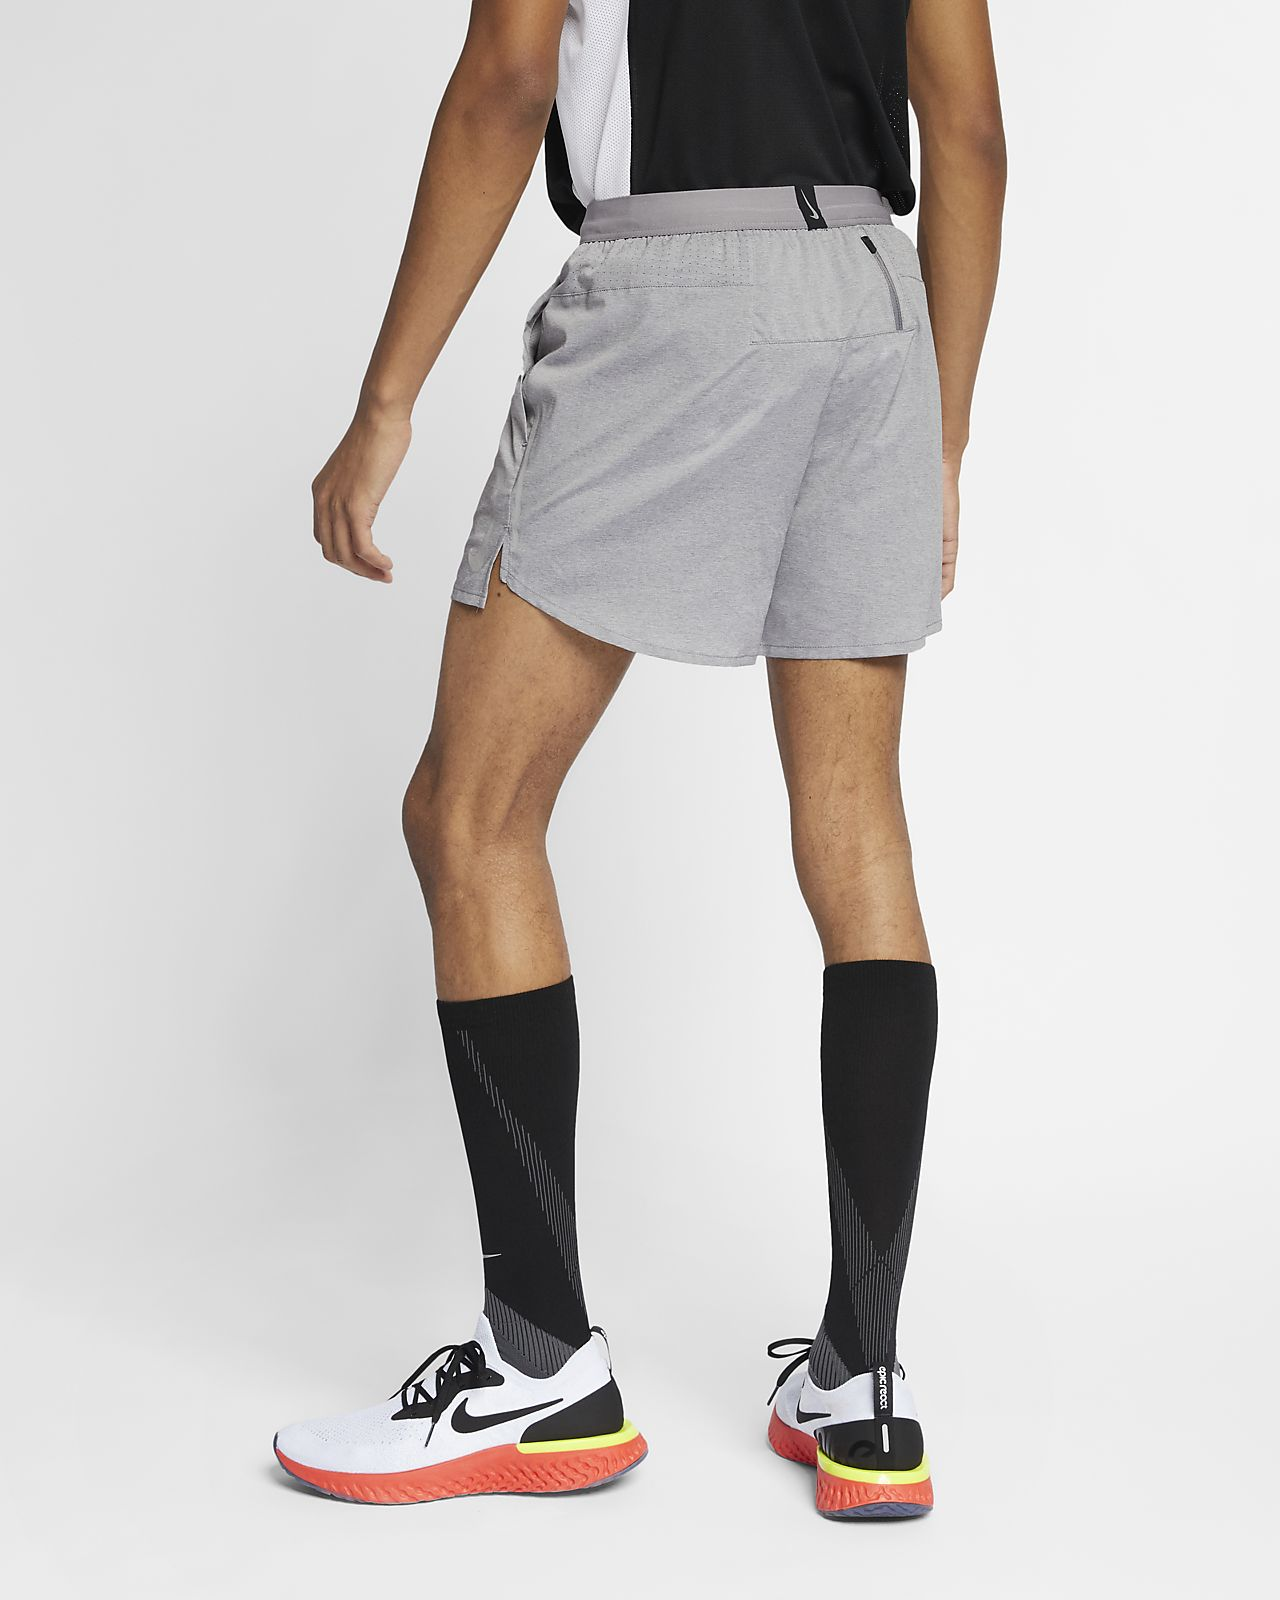 Nike Flex Stride Men's 13cm (approx.) Running Shorts